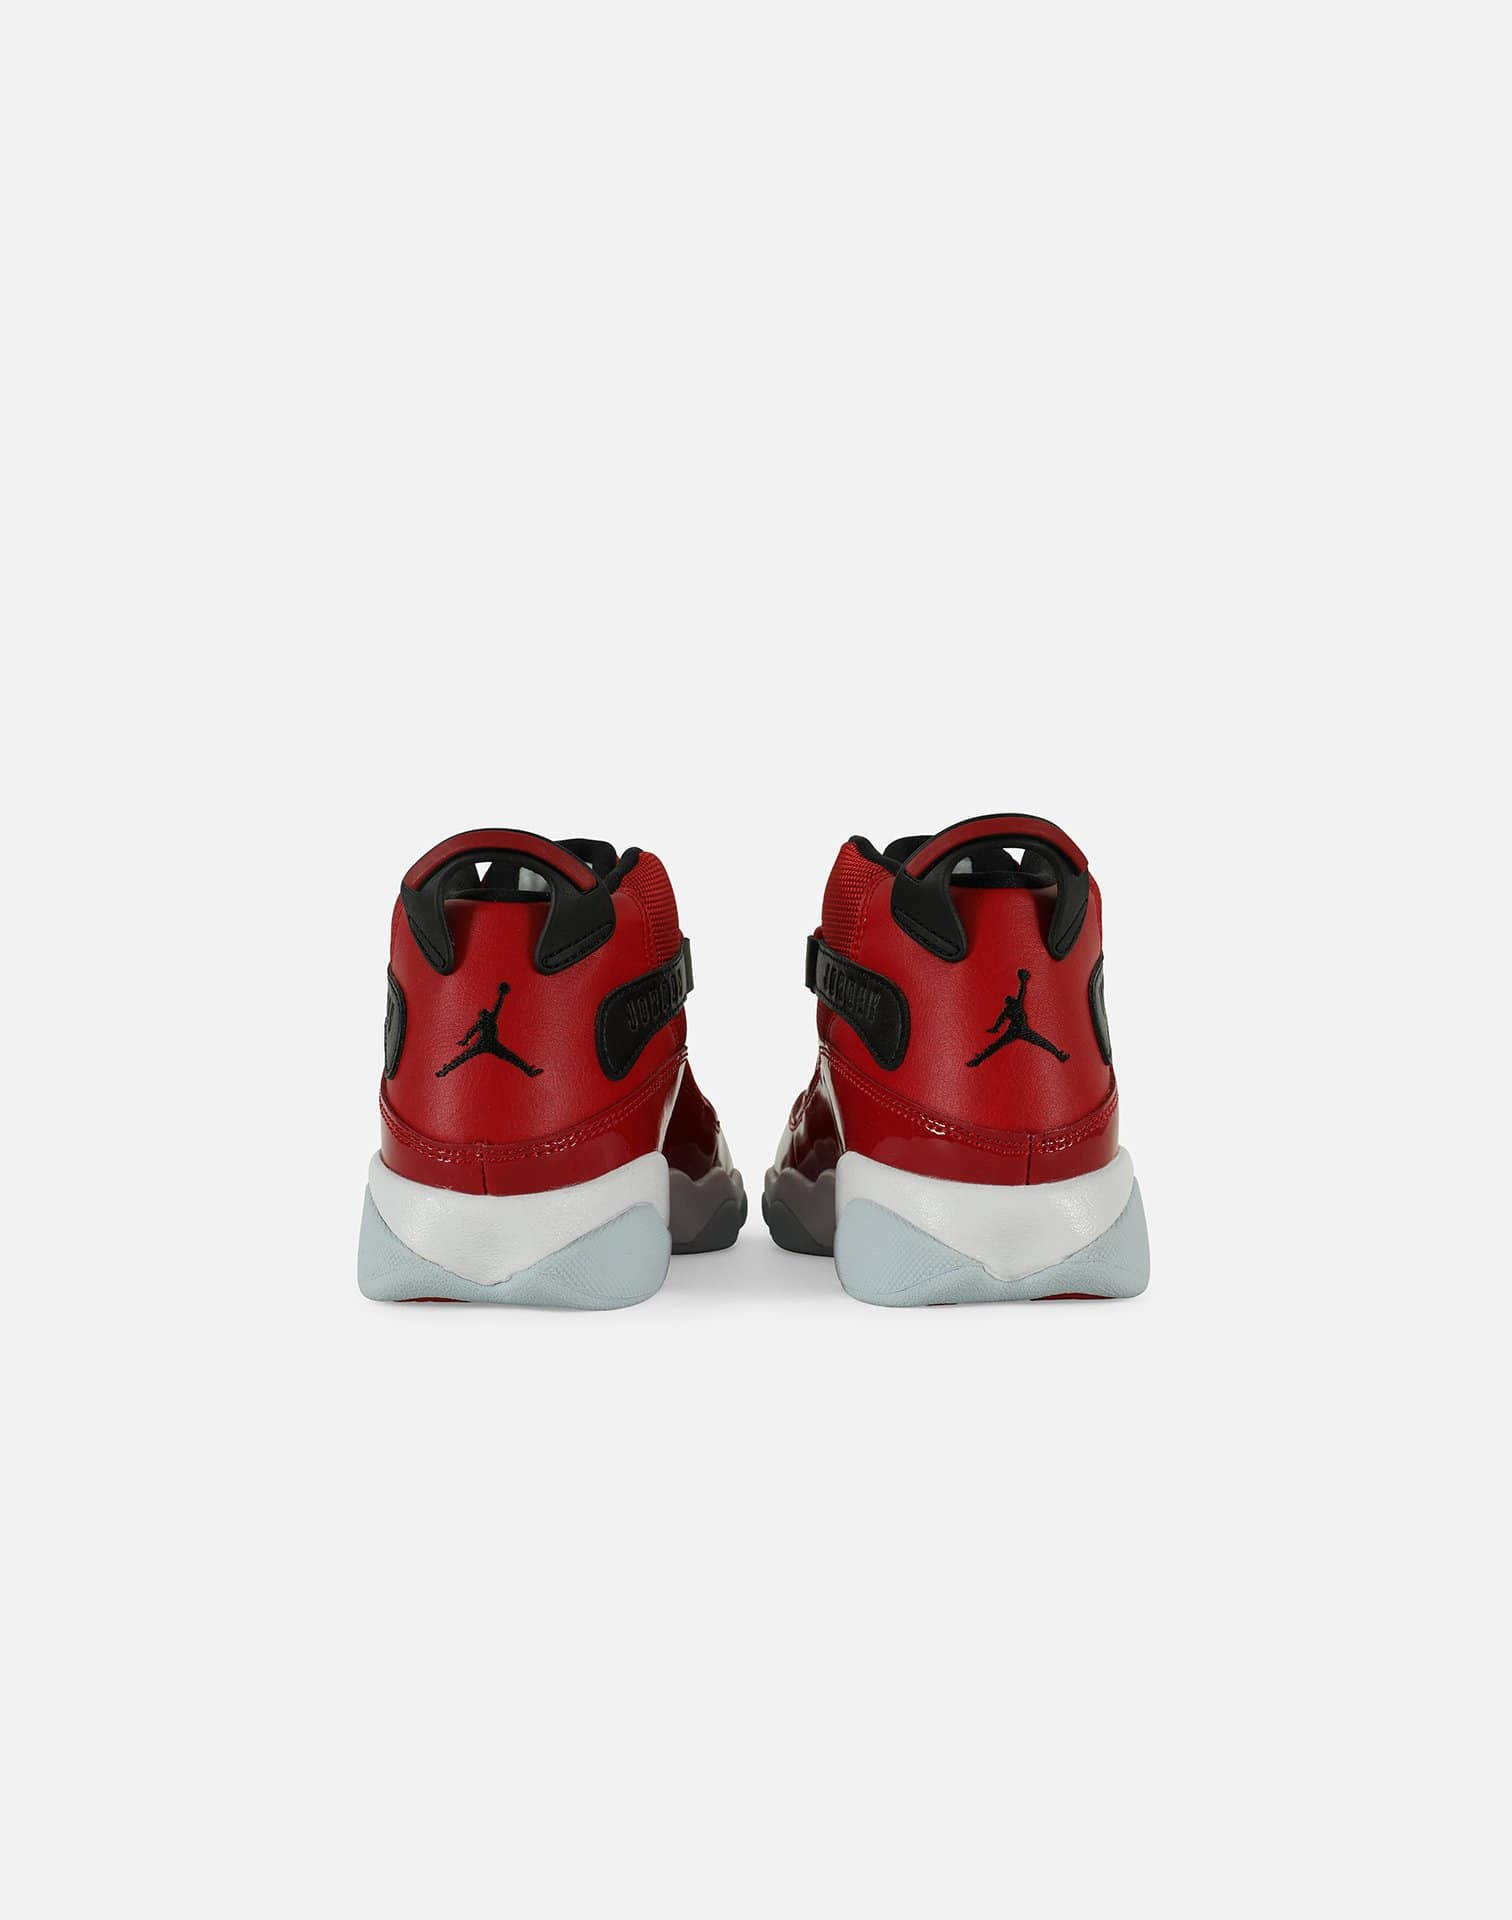 AIR JORDAN 6 RINGS PRE-SCHOOL